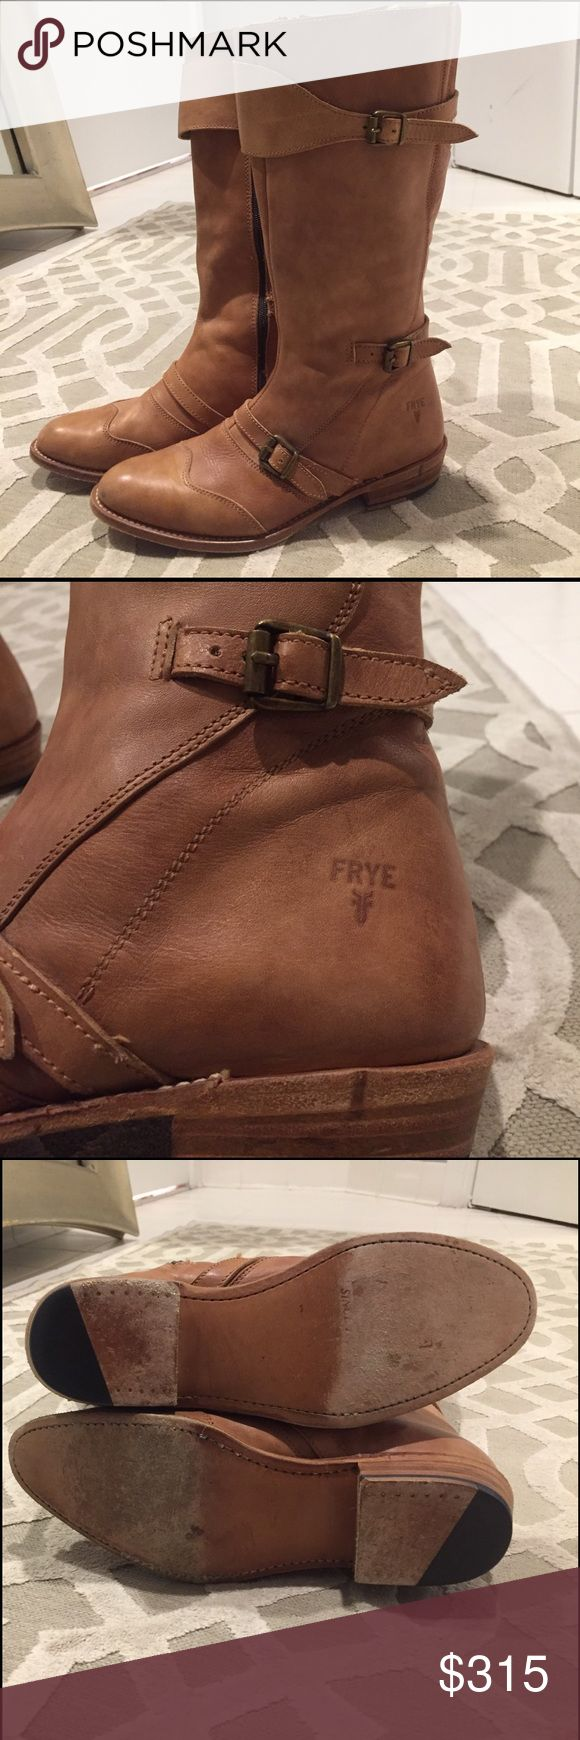 Frye Dorado boots in tan -- worn 1 time!! Barely worn frye riding boots in tan -- size 8.5 Frye Shoes Winter & Rain Boots